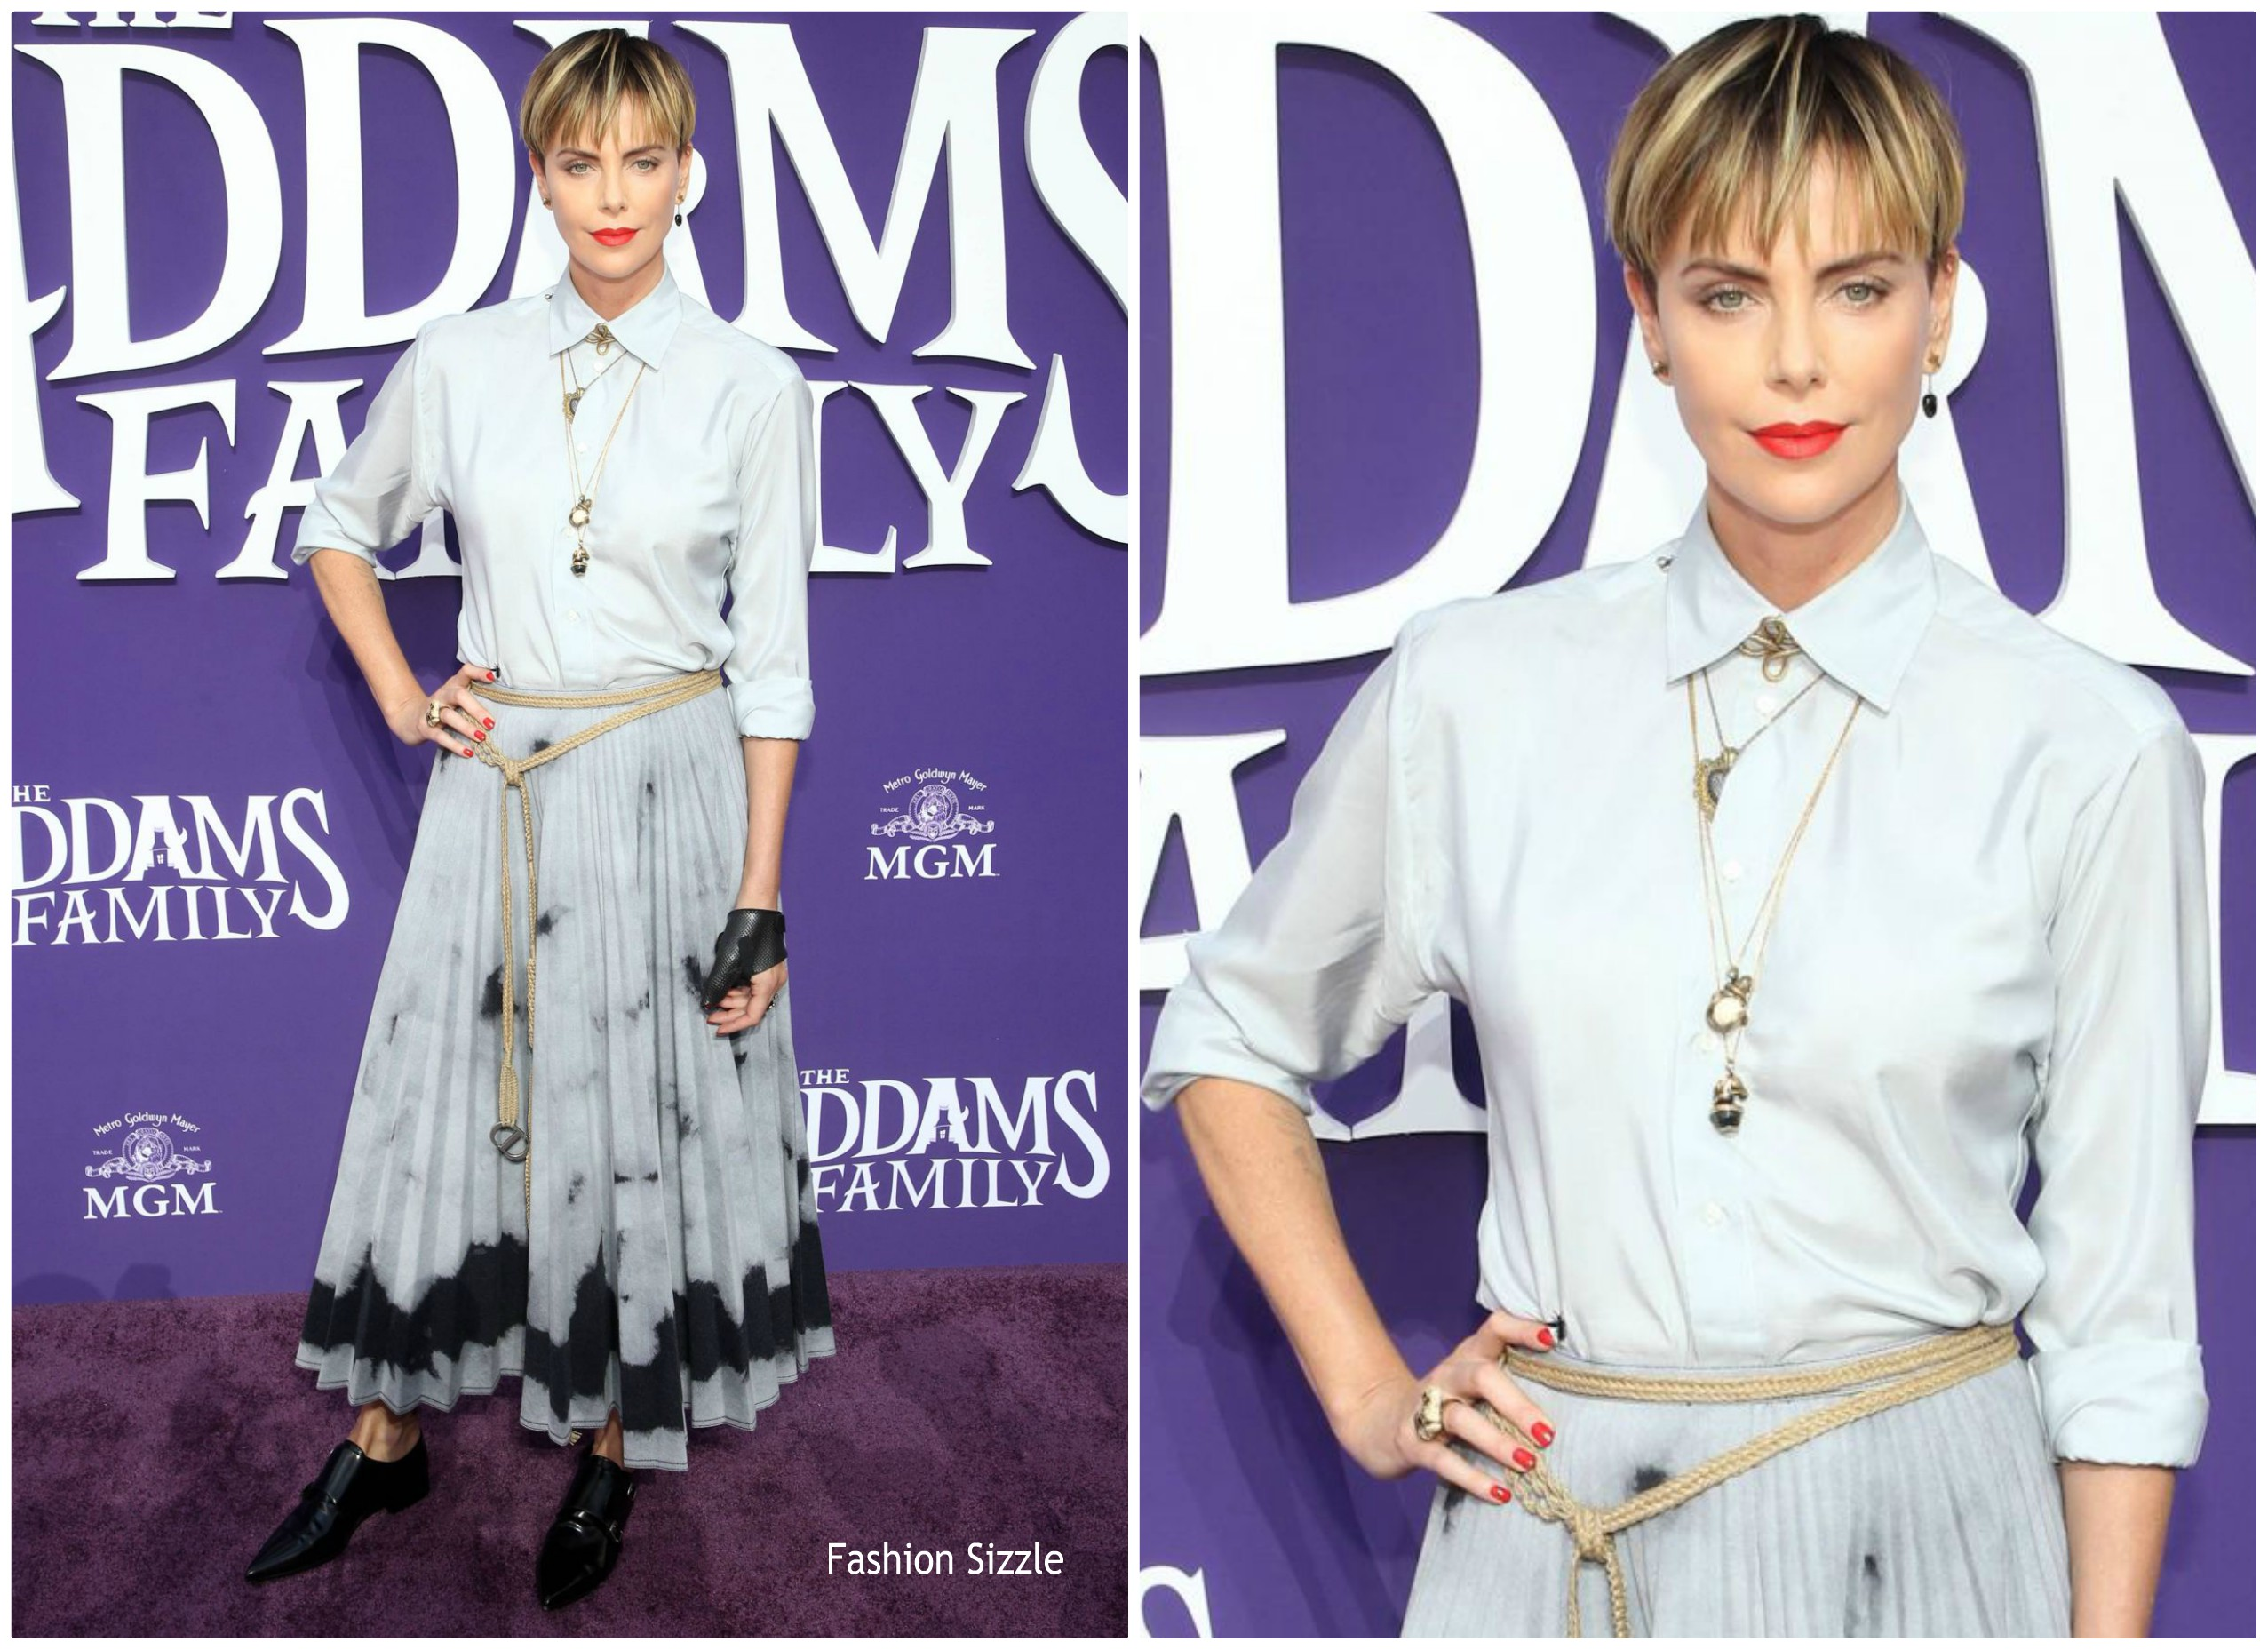 charlize-theron-in-christian-dior-the-addams-family-la-premiere